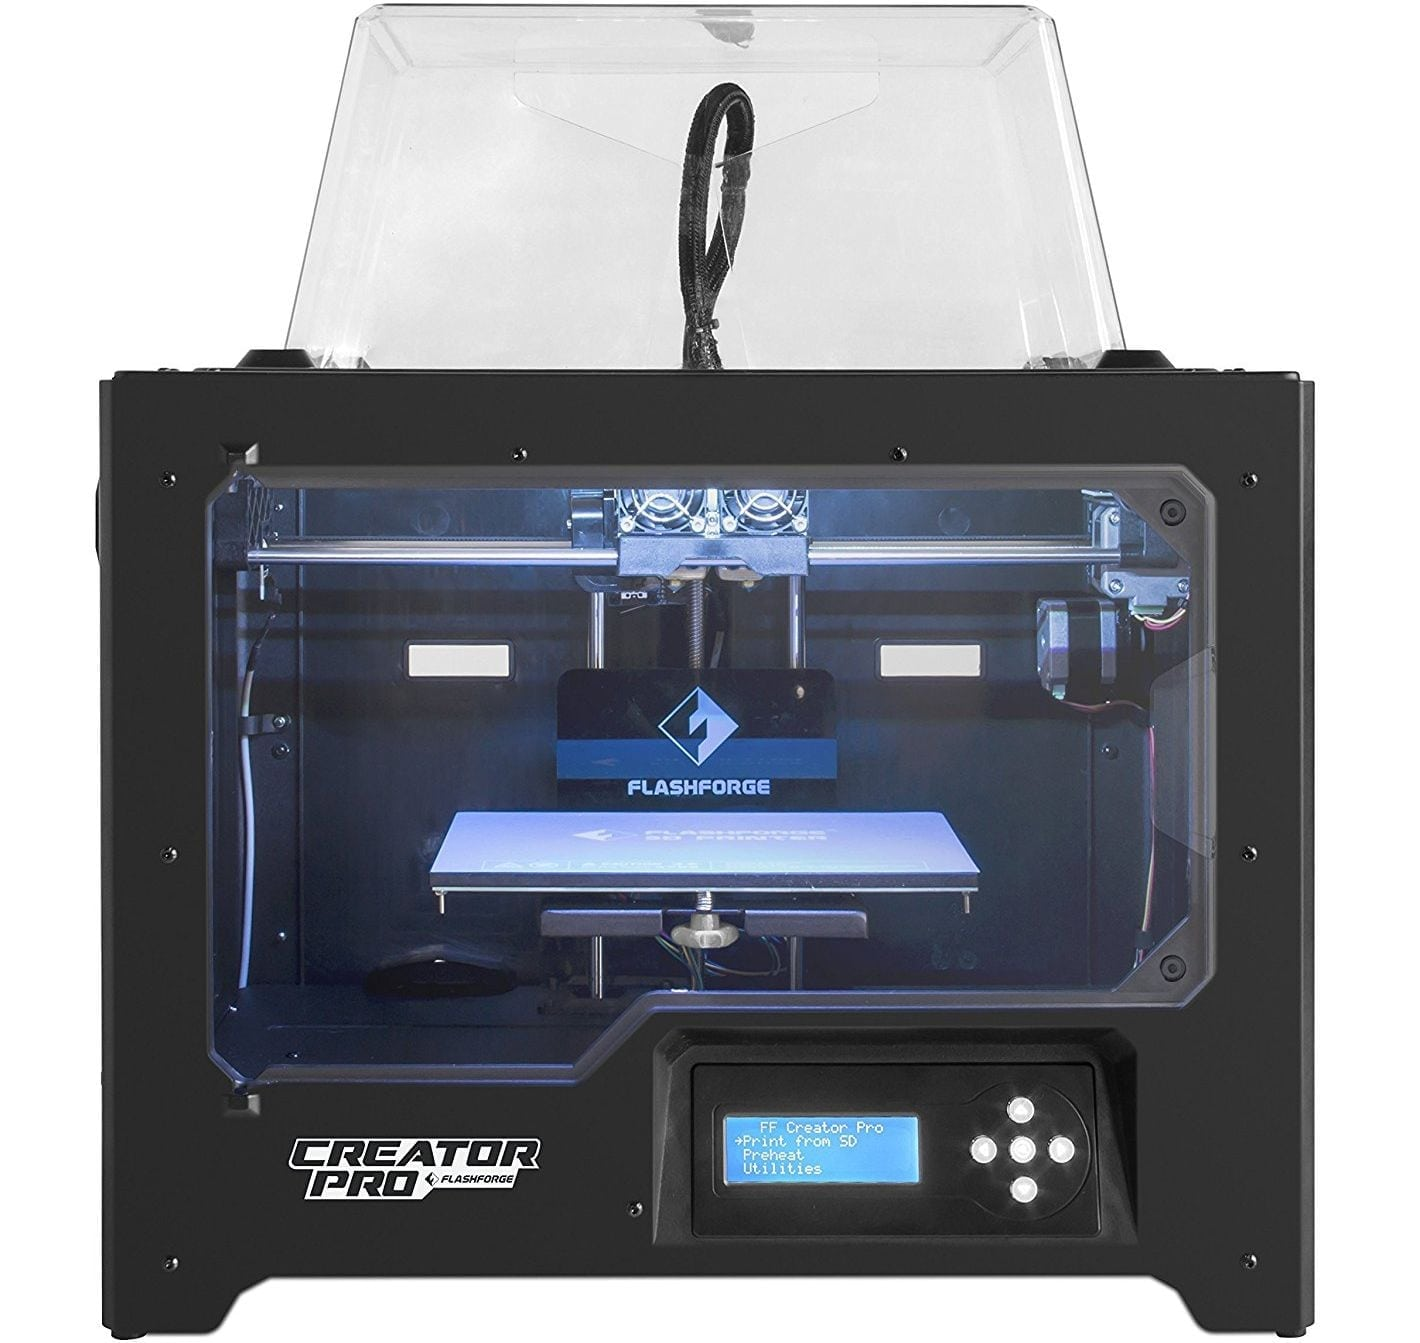 FlashForge Creator Pro miniature 3D printer